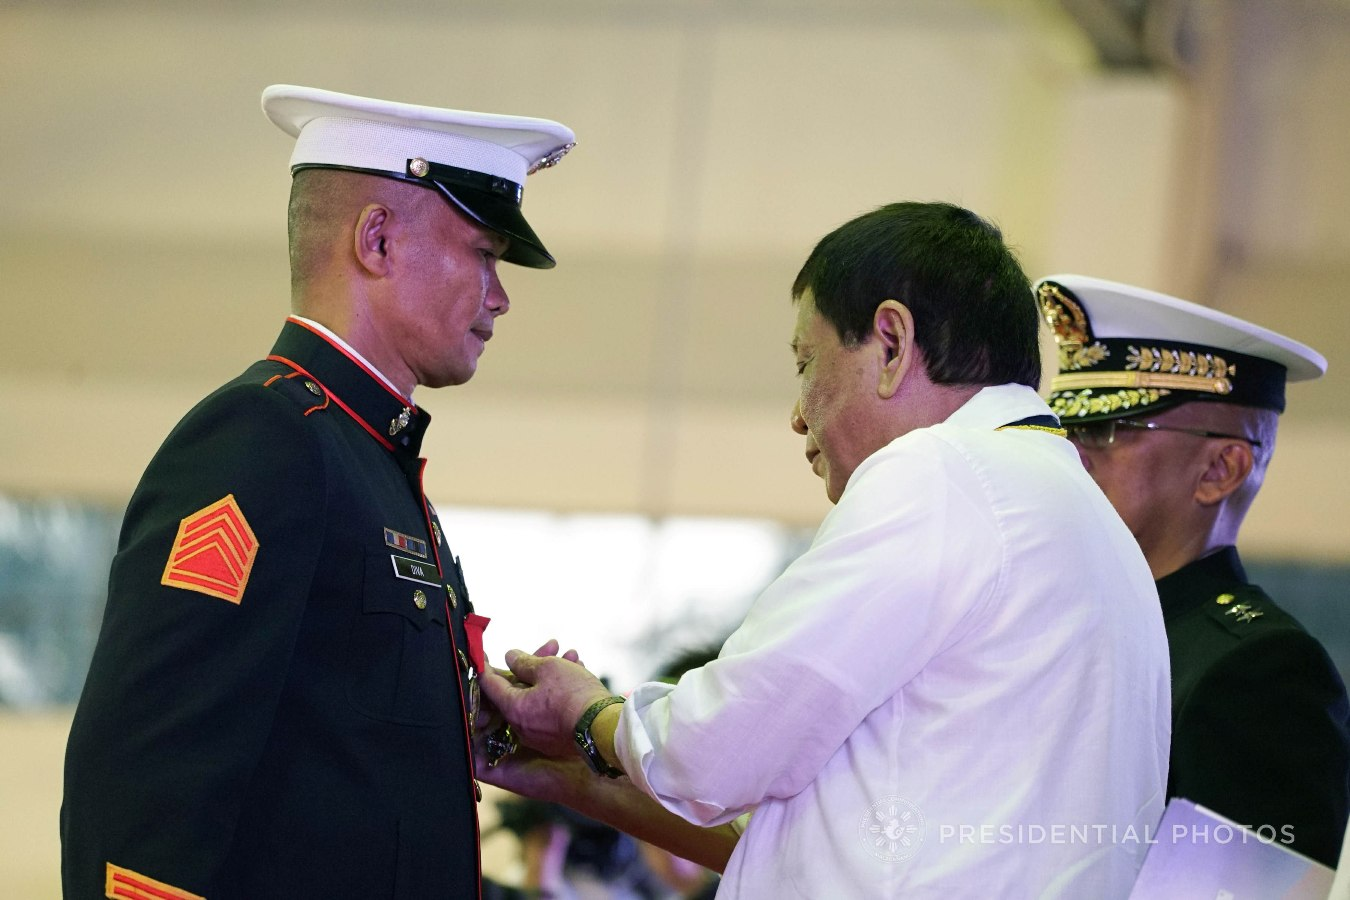 President Rodrigo Roa Duterte confers the Order of Lapu-Lapu Kamagi Medal and the Bronze Cross Medal on SSGt. Antonio Diva during the 67th Birthday celebration of the Philippine Marine Corps at the Bonifacio Naval Station in Fort Bonifacio, Taguig City on November 7, 2017. Diva was hailed for his acts of heroism as member of the 25th Marine Company who fought against terrorists from the Maute Group. KING RODRIGUEZ/PRESIDENTIAL PHOTO